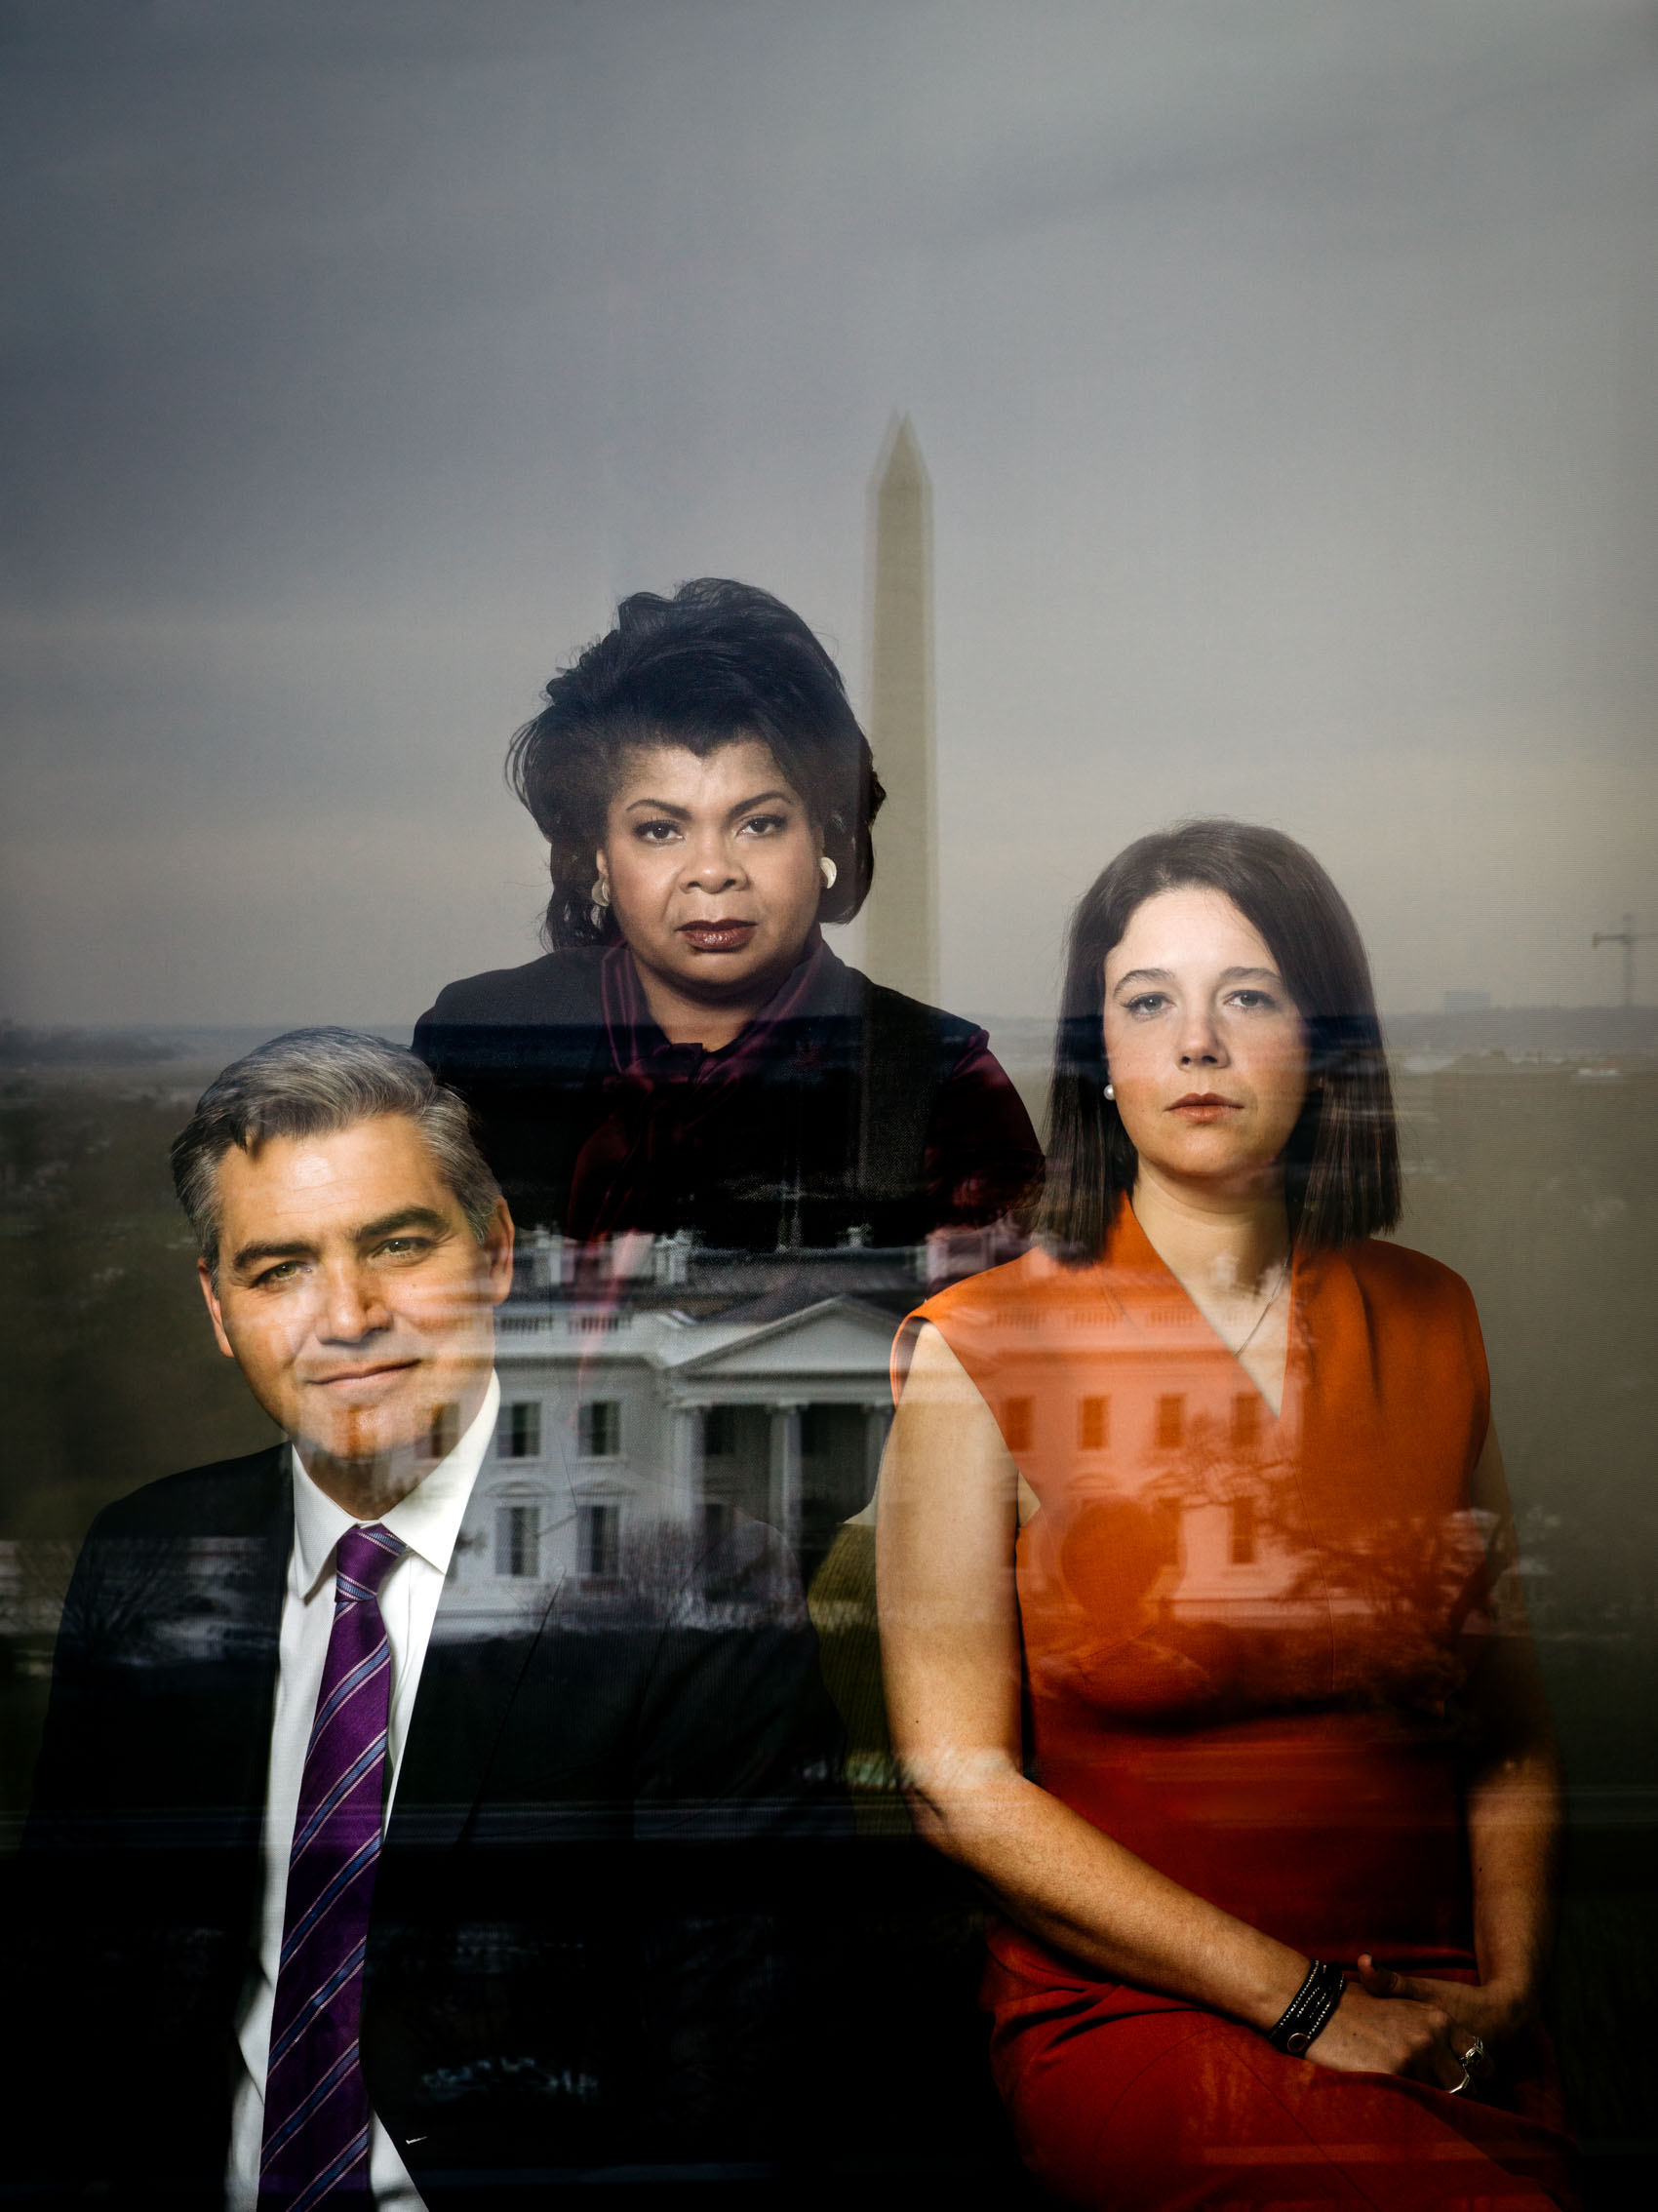 Washington DC portrait photography white house correspondents Jim Acosta April ryan ashley parker